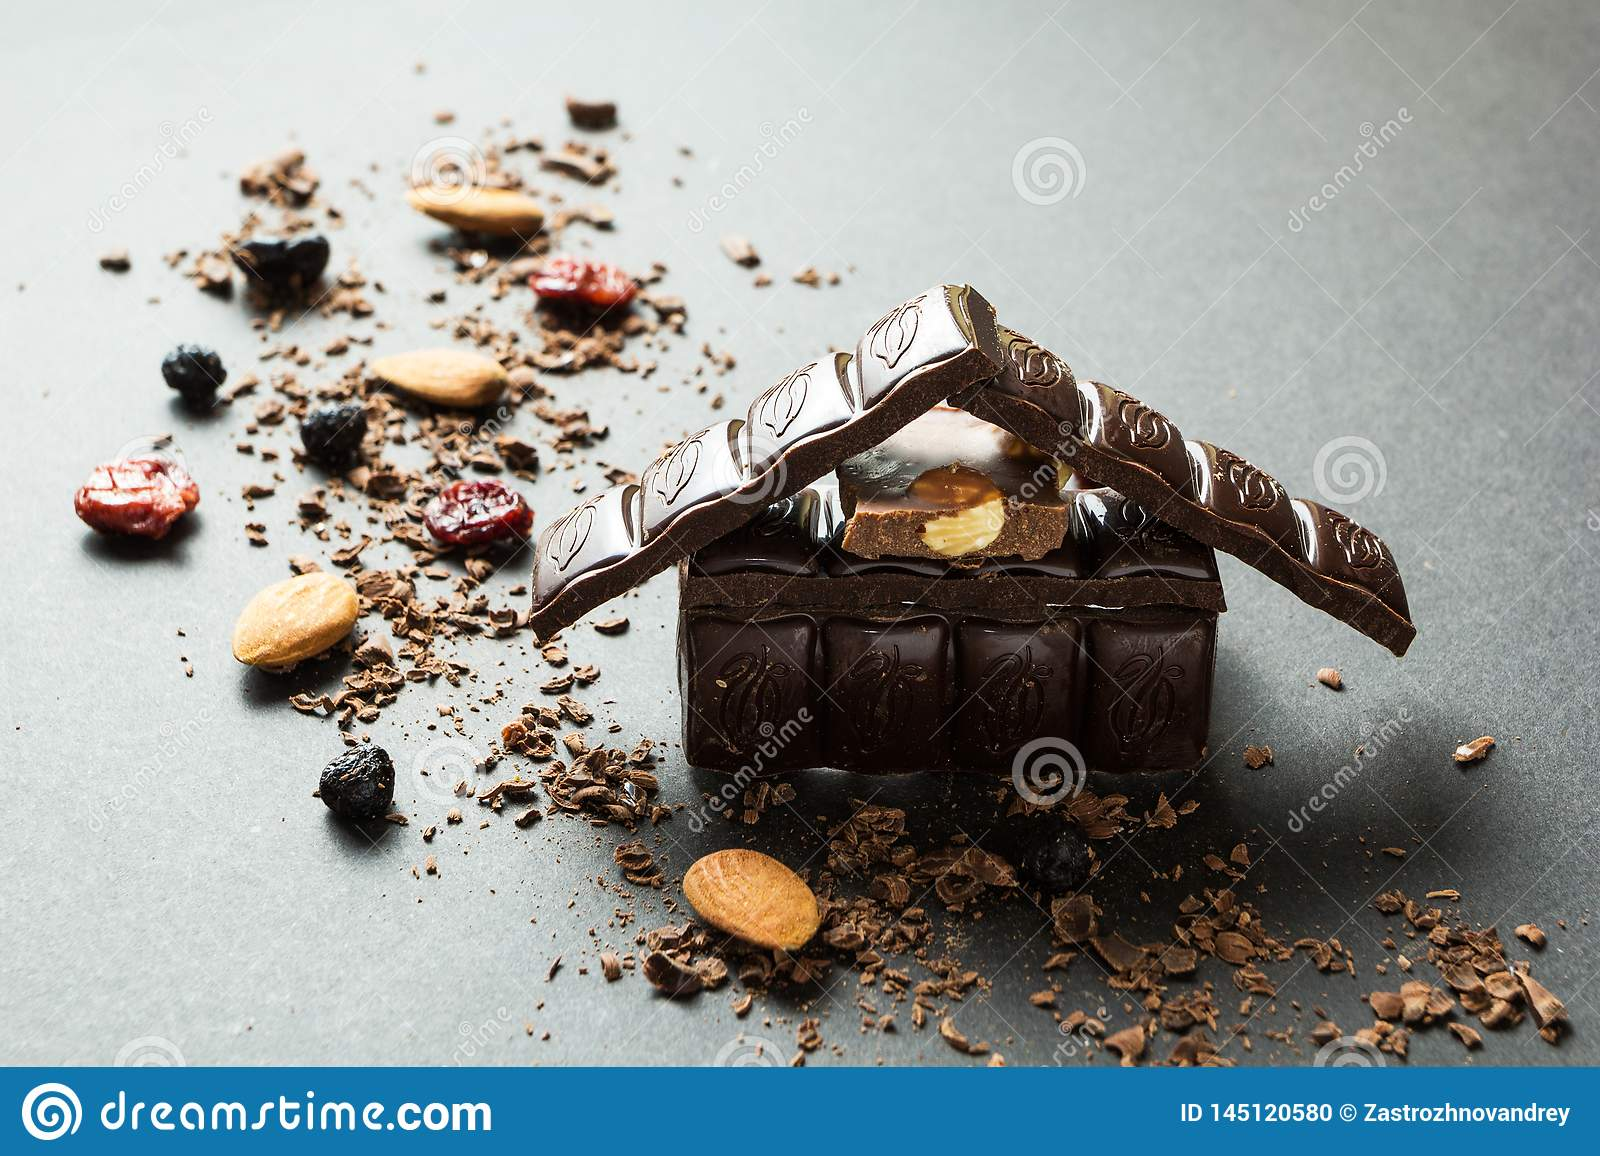 Holiday chocolate house and dried fruits with nuts on a black background